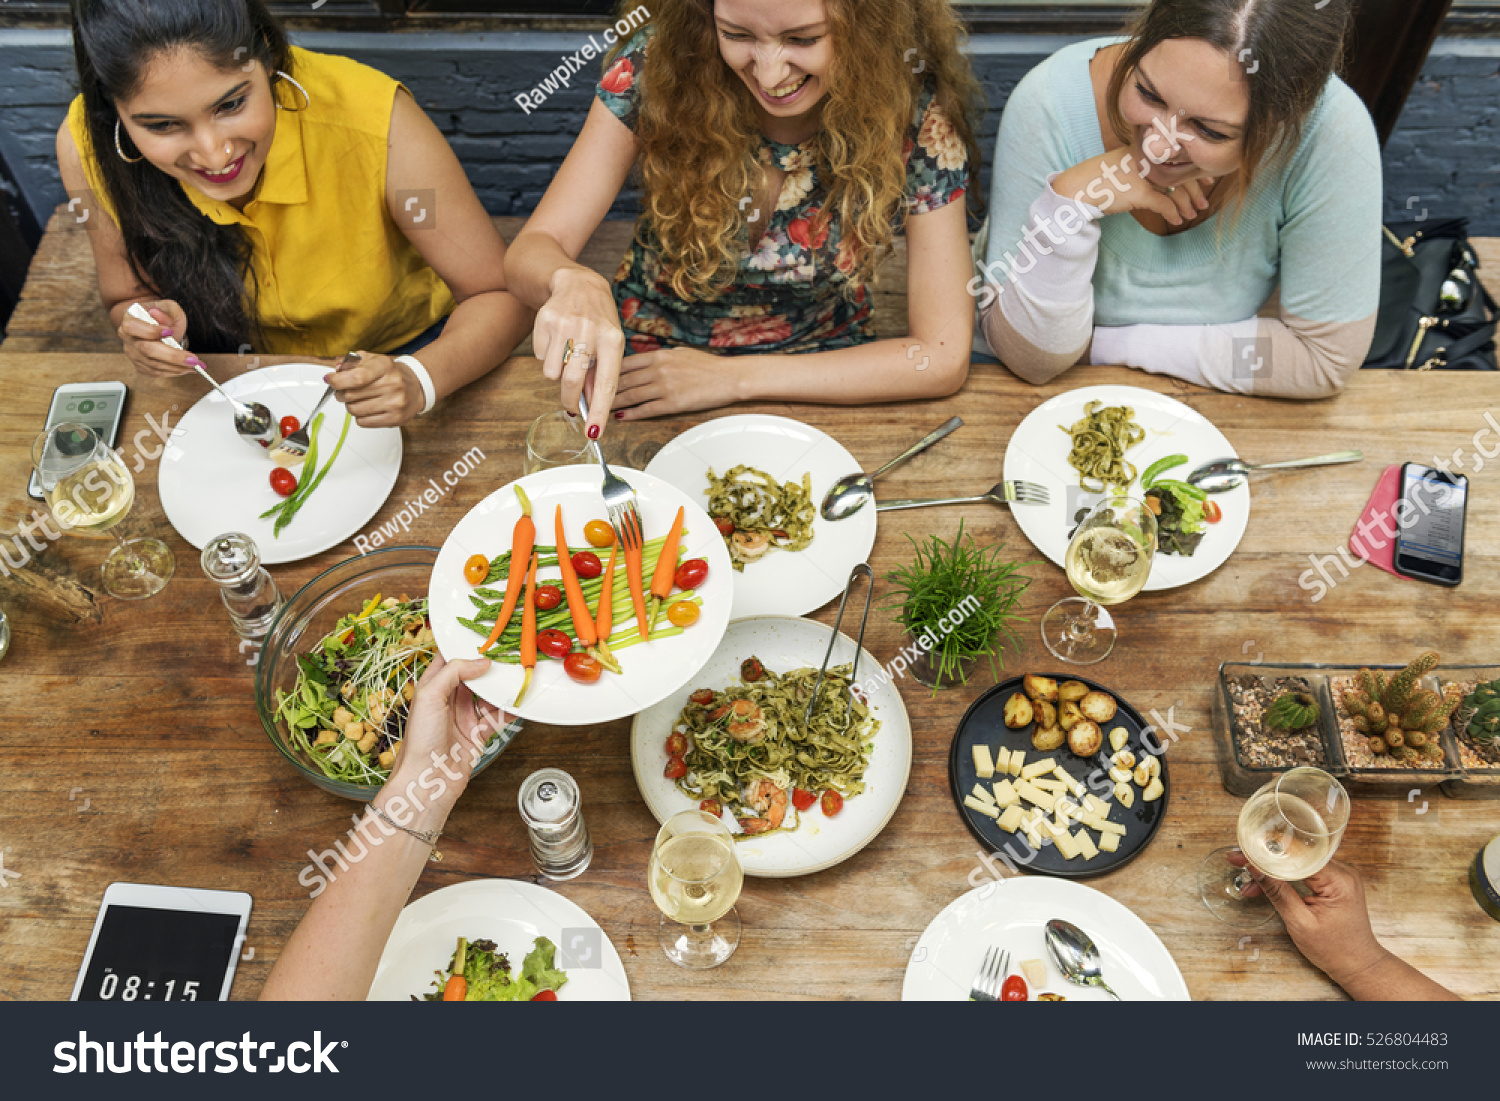 Women Communication Dinner Together Concept #526804483